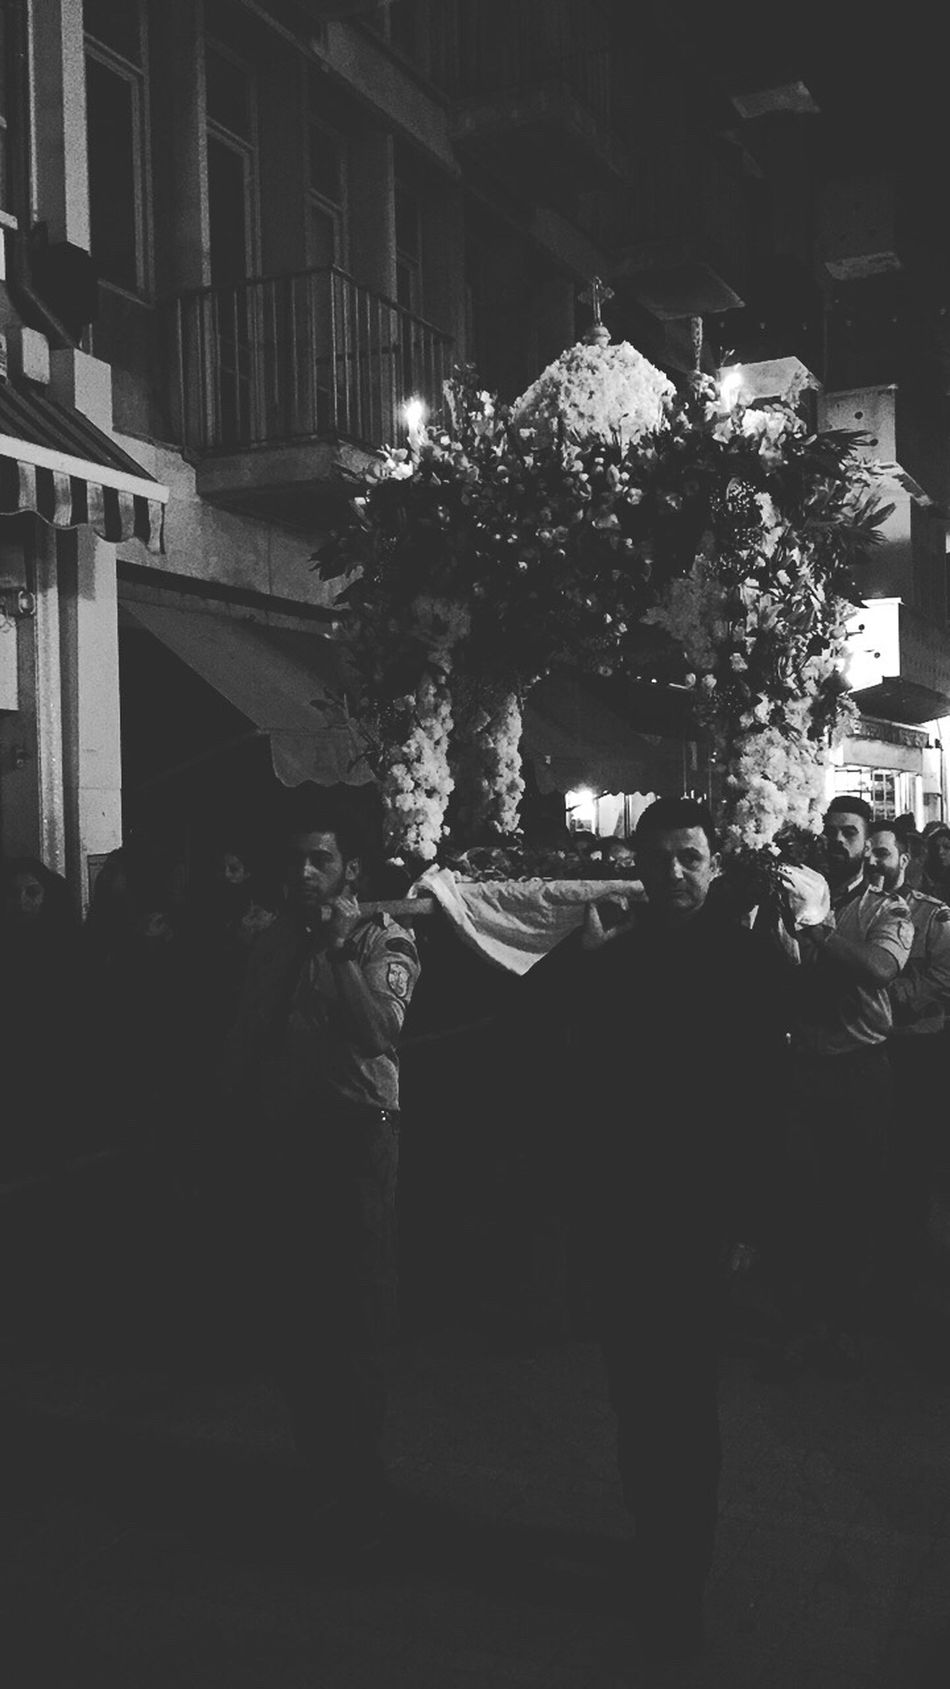 Cyprus Nicosia Night Celebration Easter Men Real People Women City Adult People KT Friday Real Life Blackandwhite Travel